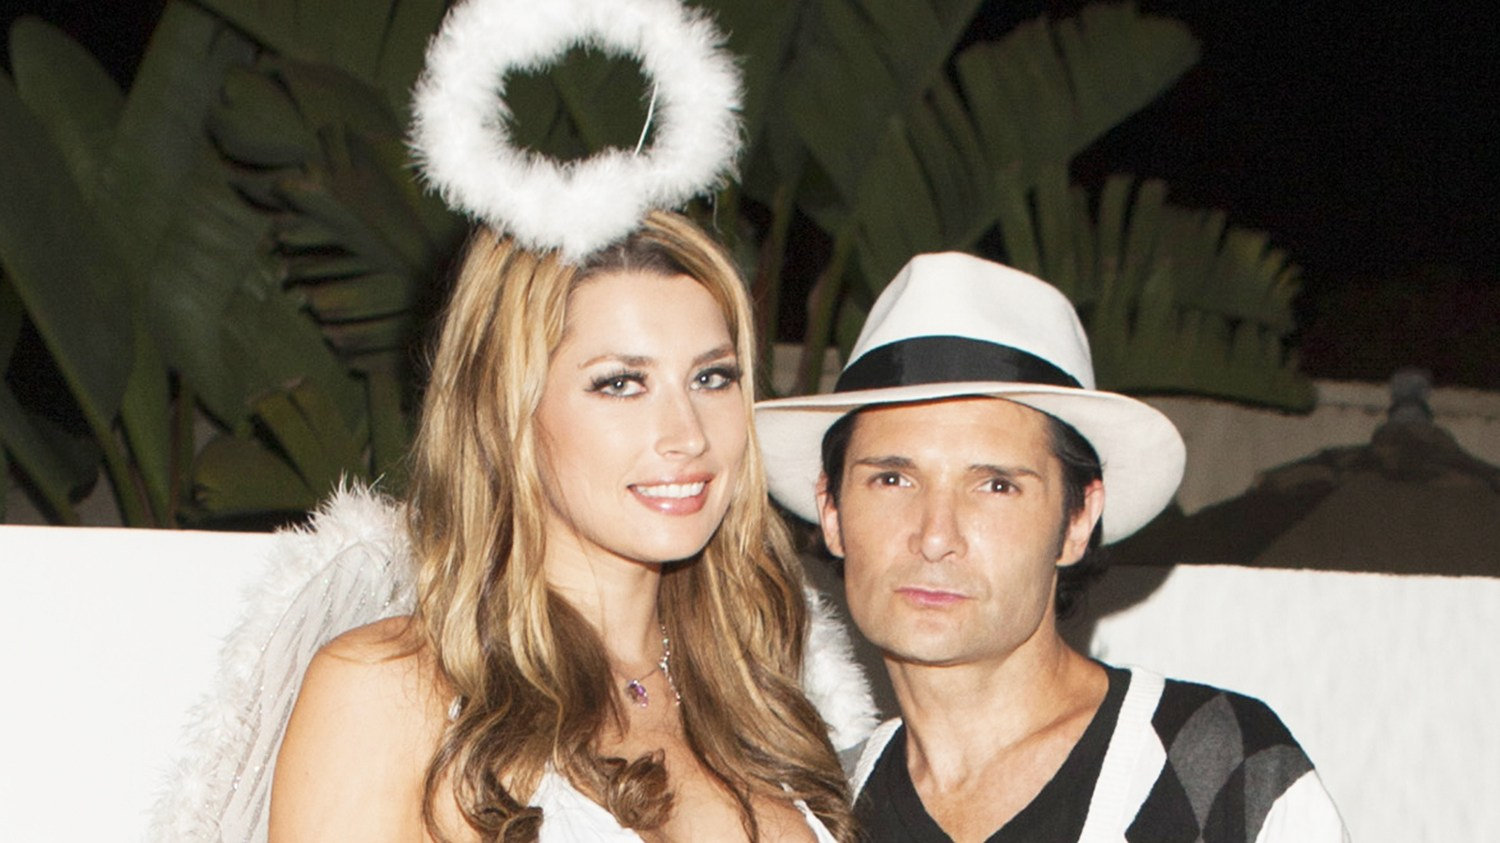 Courtney Anne and Corey Feldman